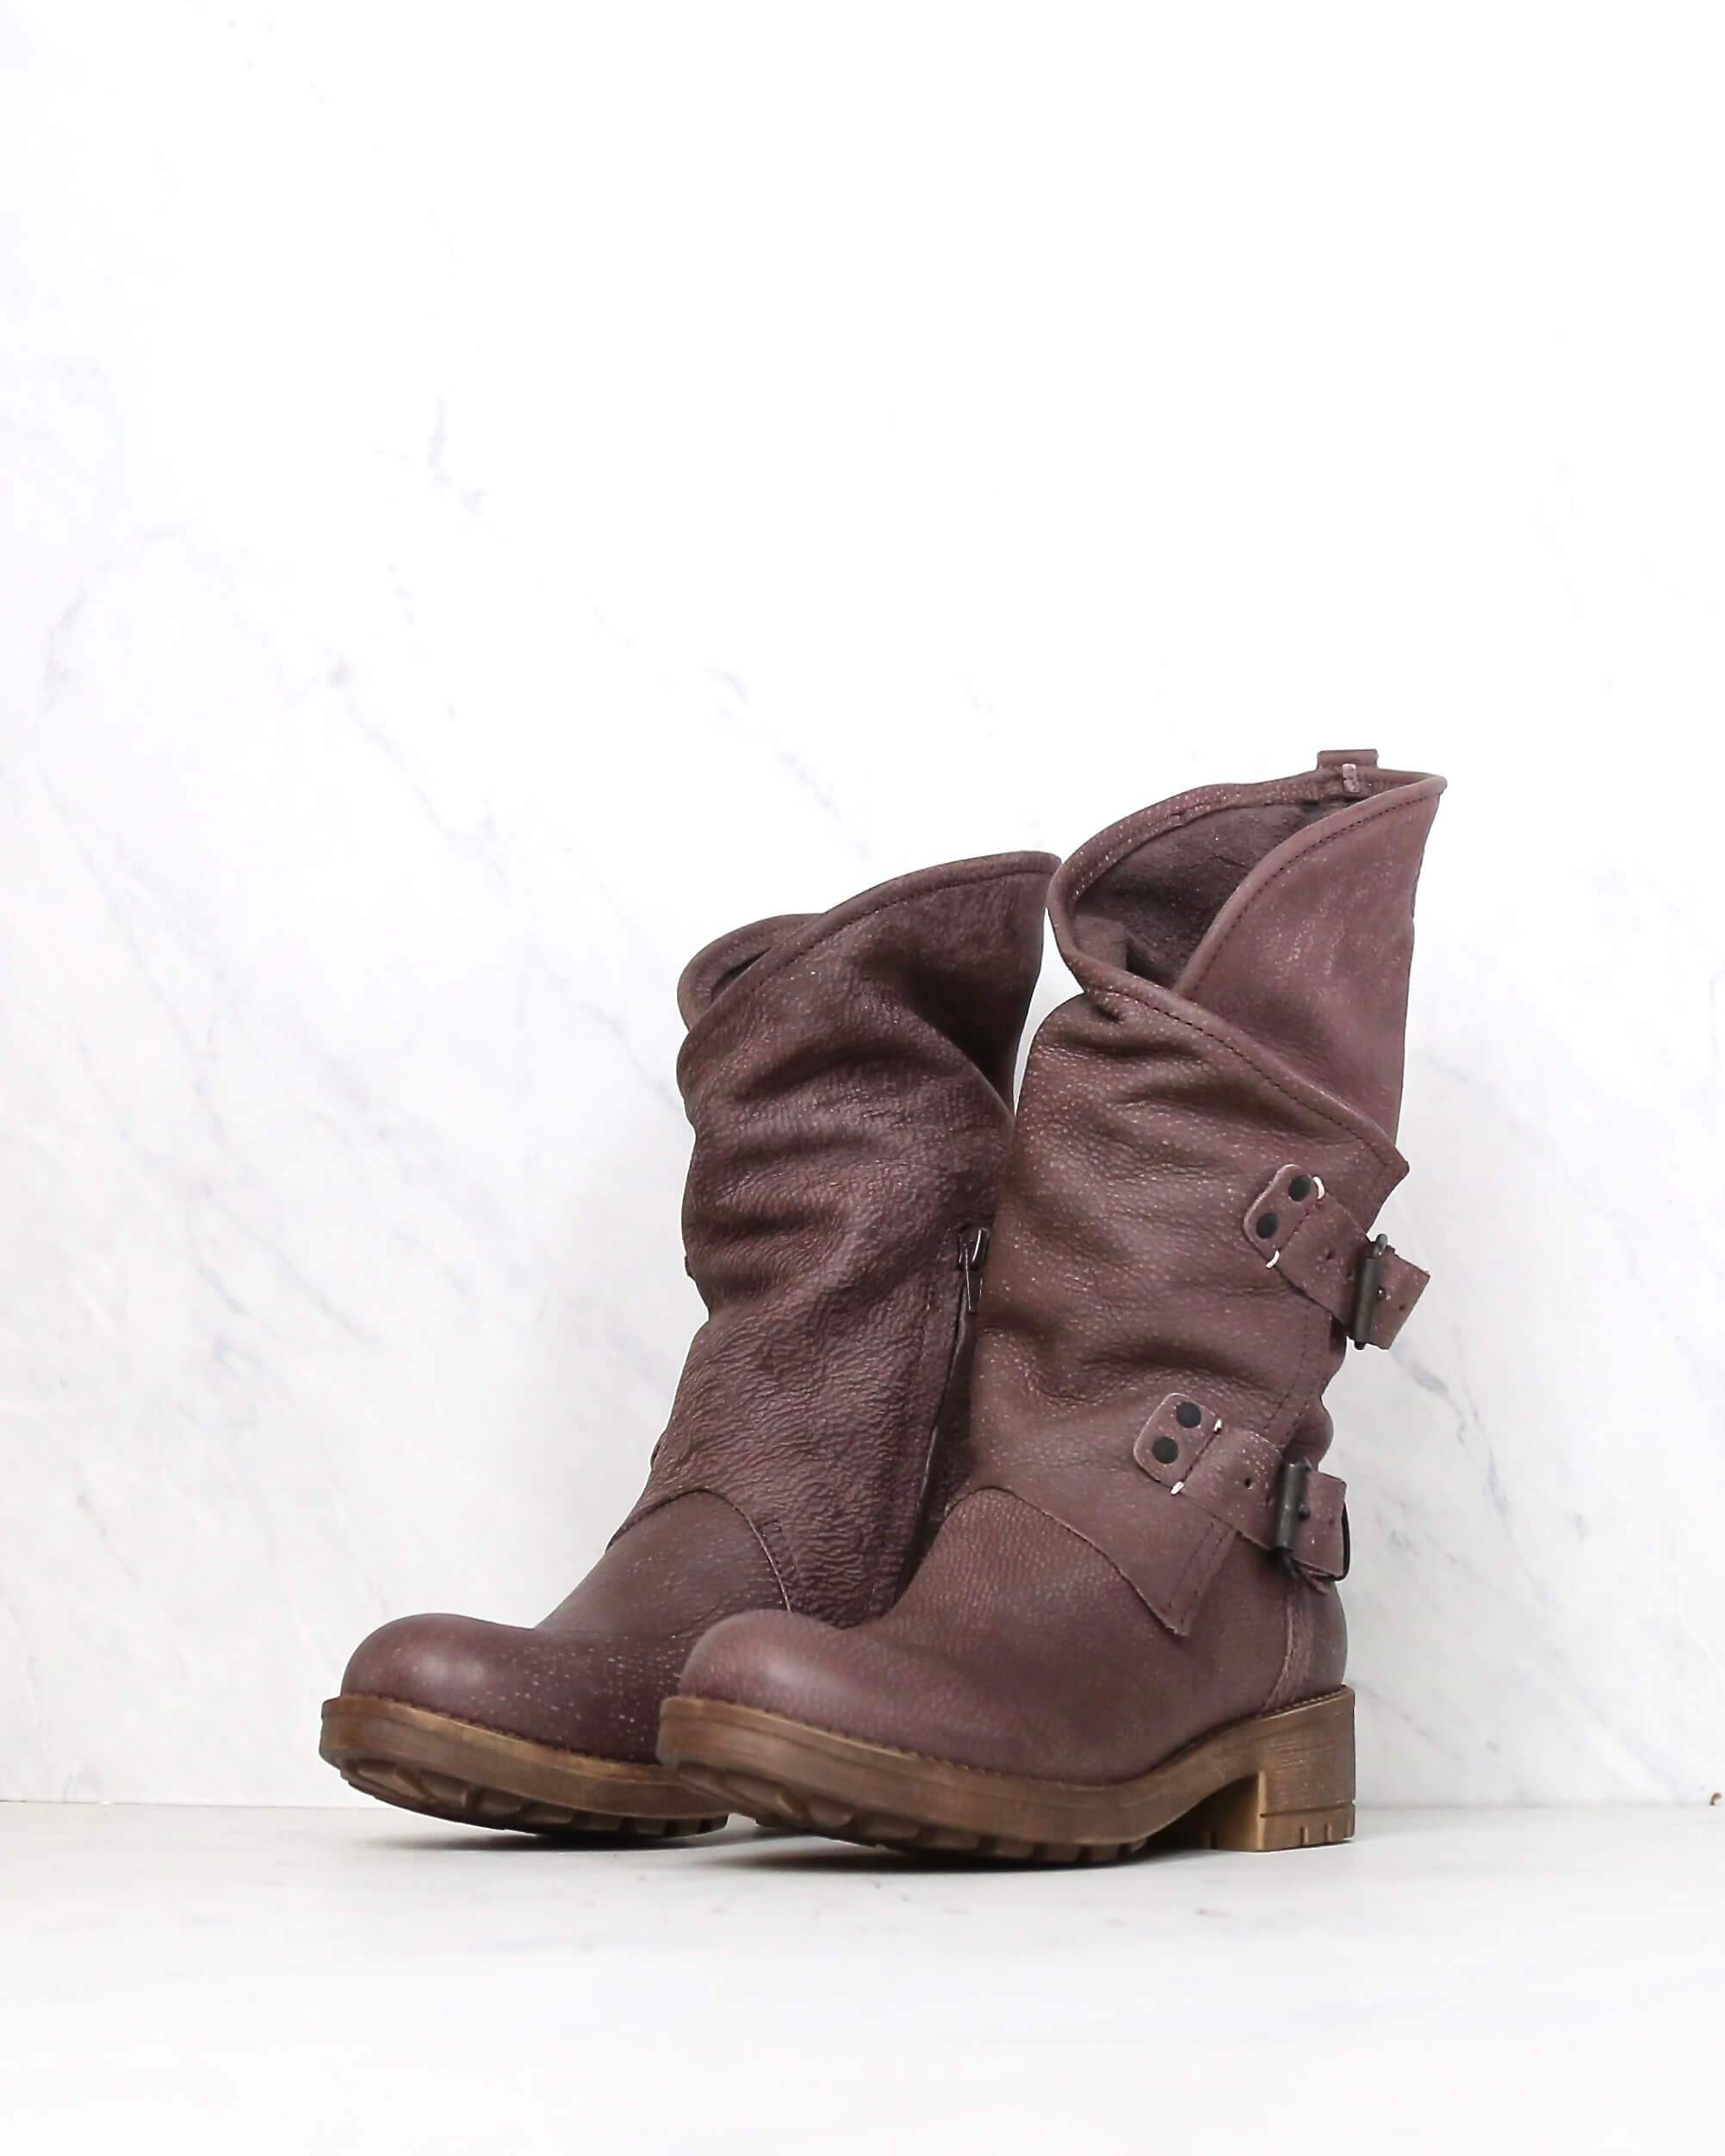 Image of Coolway - Alida Leather Motorcycle Boots in Dark Brown